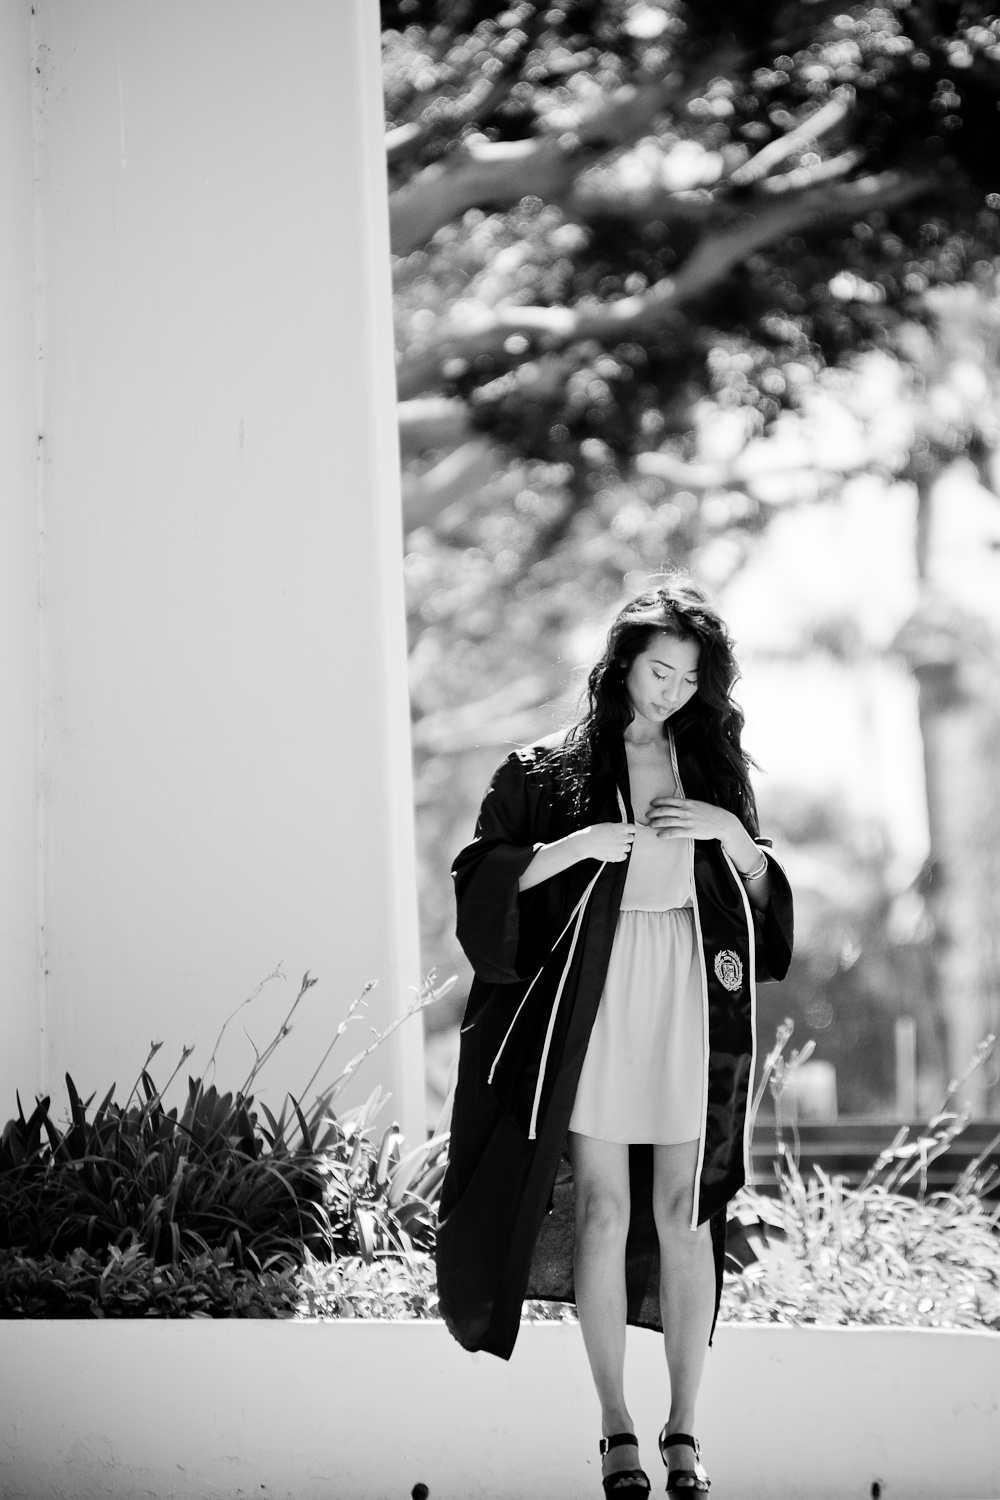 Bryan-Miraflor-Photography-Chelsea-Chow-Grad-Pictures-CSULB-20140430-0018.jpg